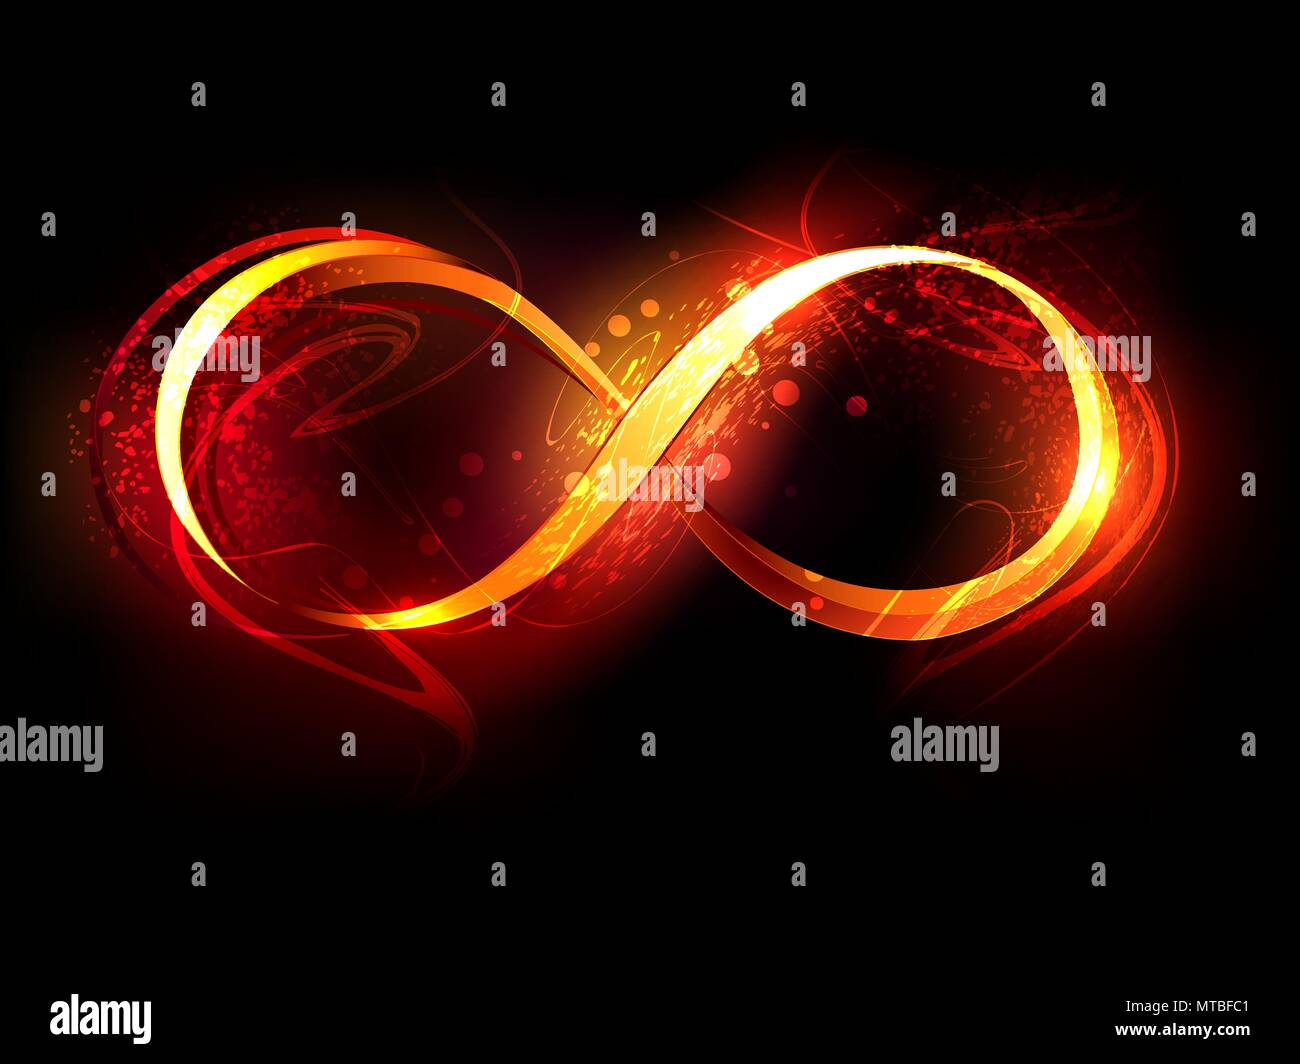 Symbol Of Infinity Made Of Fire And Flame On Black Background Stock